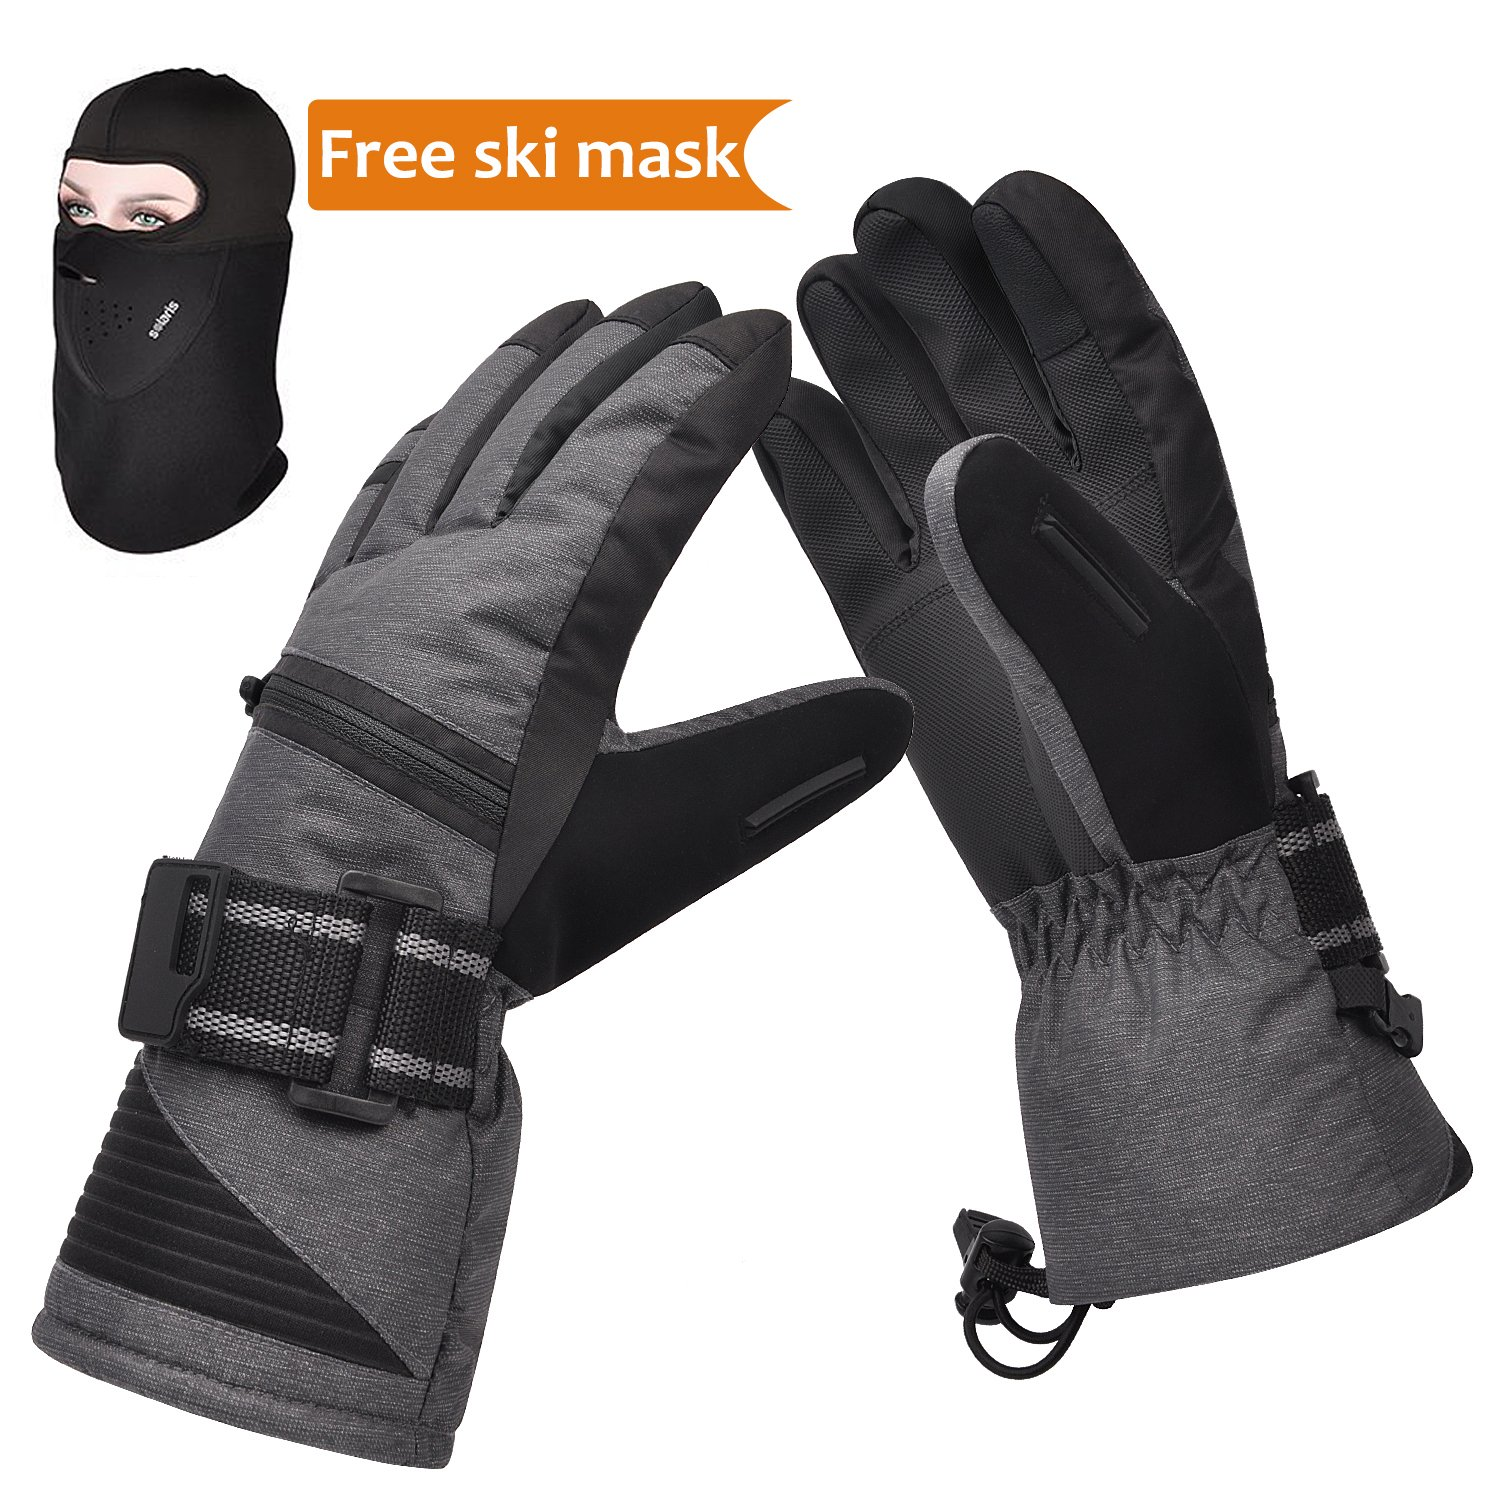 Details about Weather Proof Ski Gloves eee3c4940